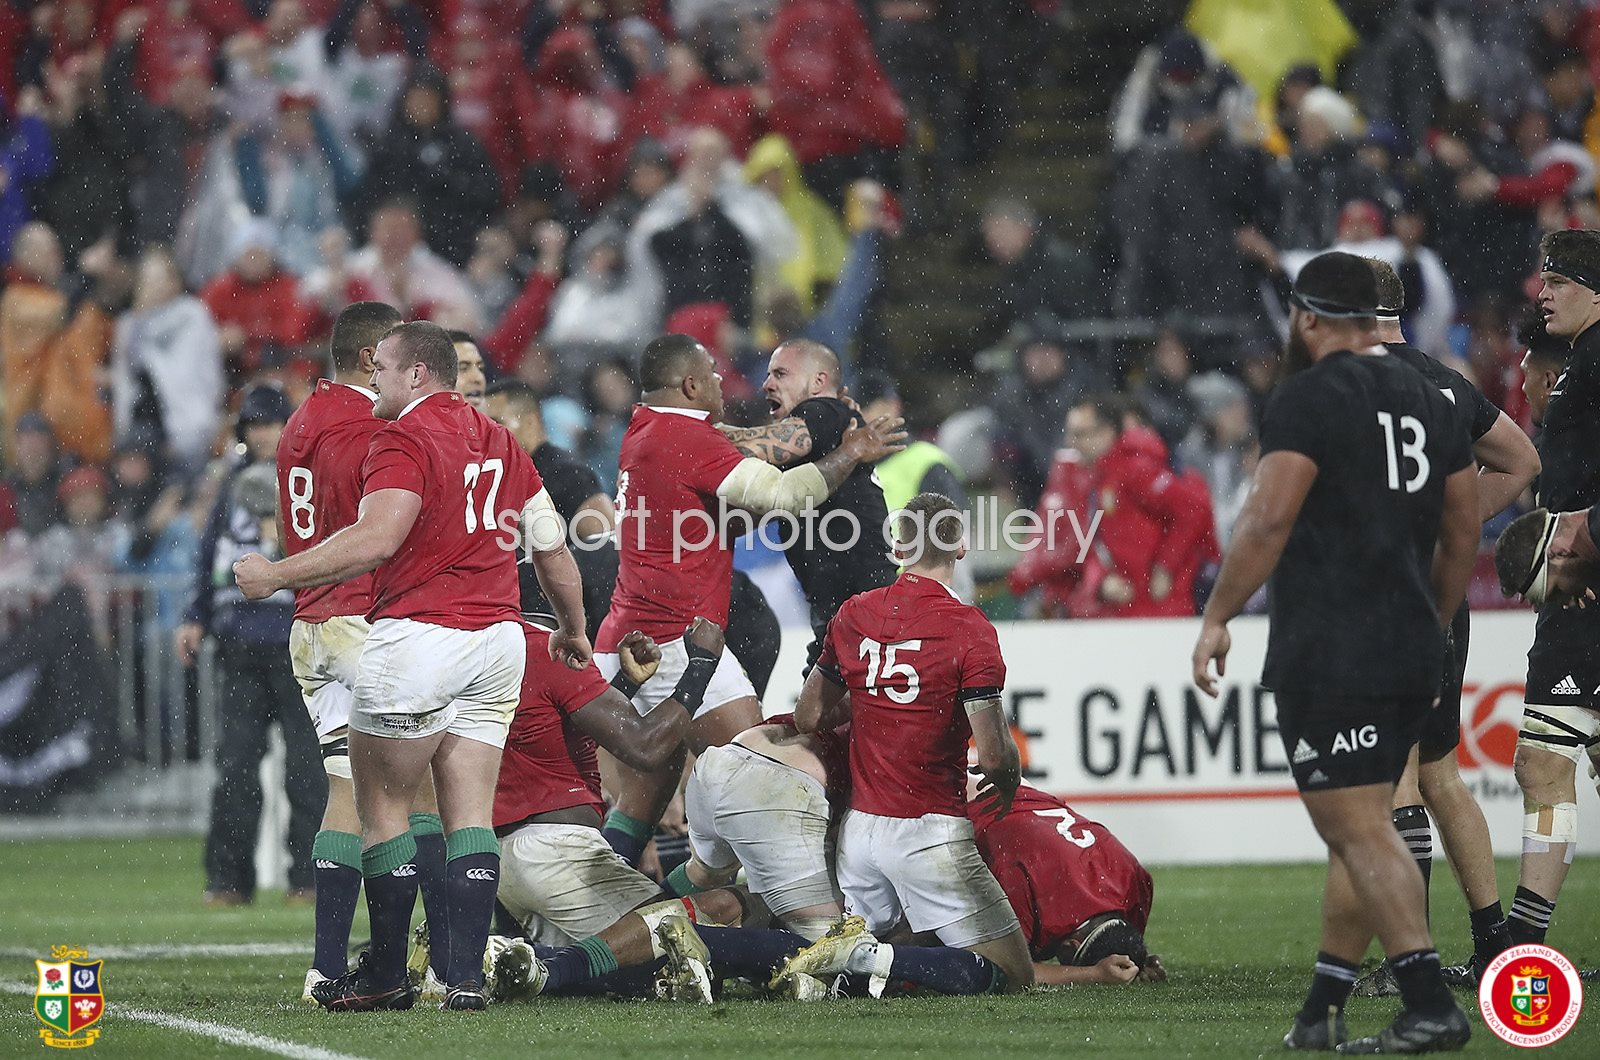 British & Irish Lions beat New Zealand Wellington 2017